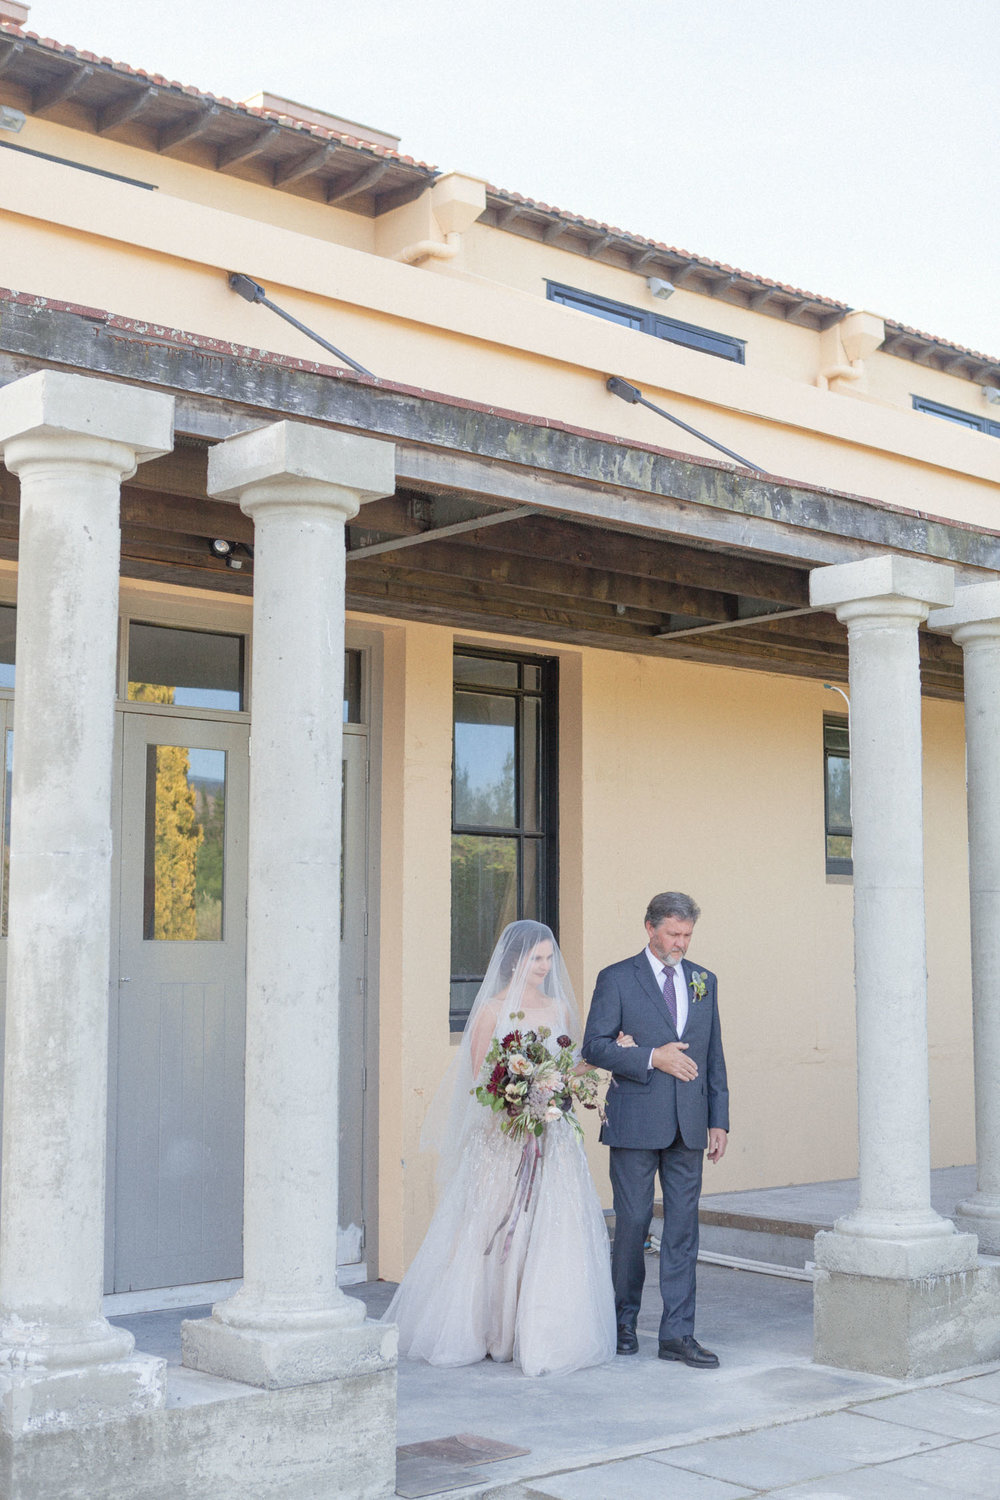 Father walking bride down wedding aisle at The Milk Station wedding venue